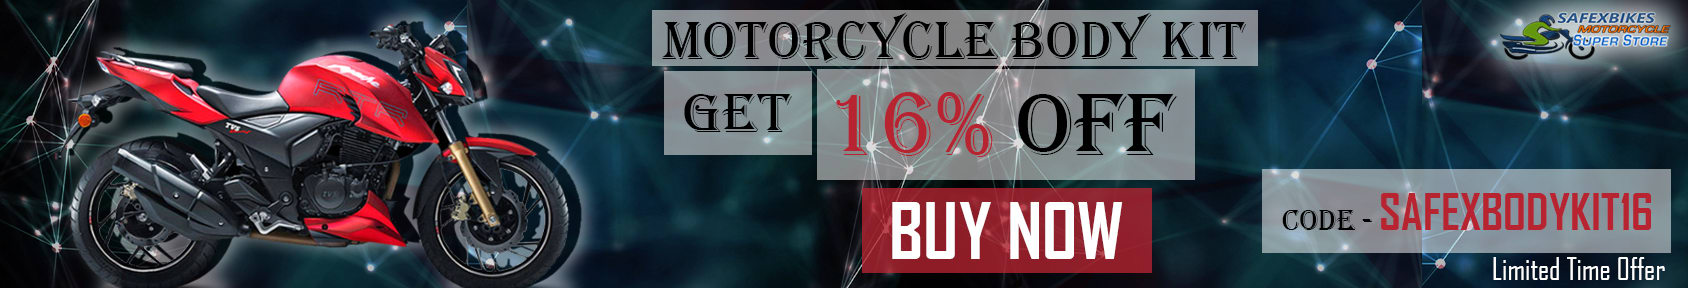 Special offers on Genuine Motorcycle Spare Parts And Accessories - MOTORCYCLE BODY KIT